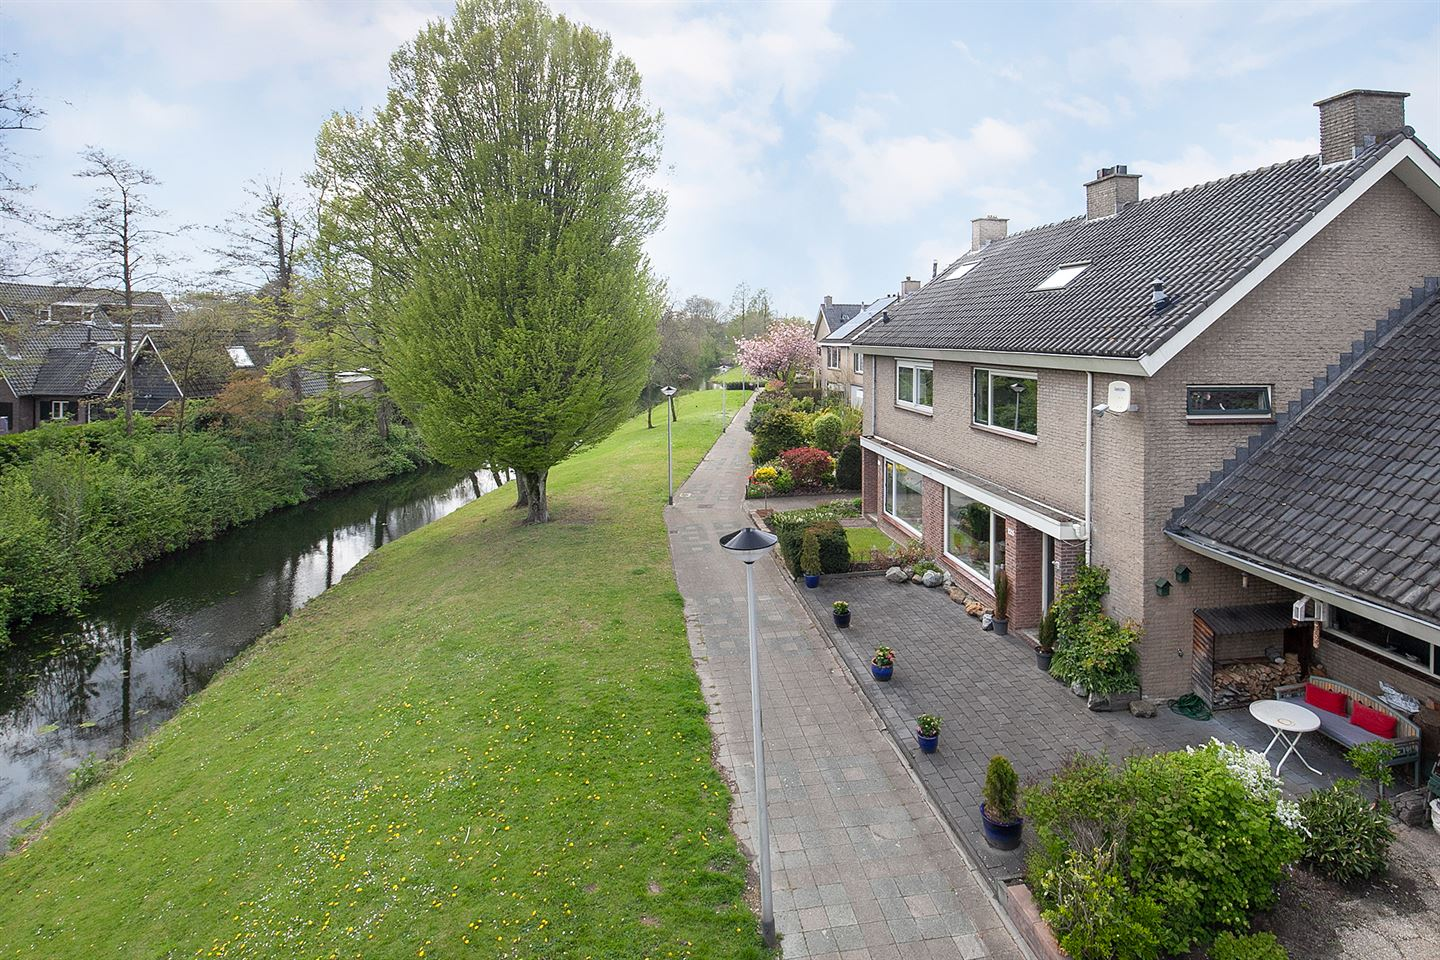 View photo 2 of Ghijseland 125